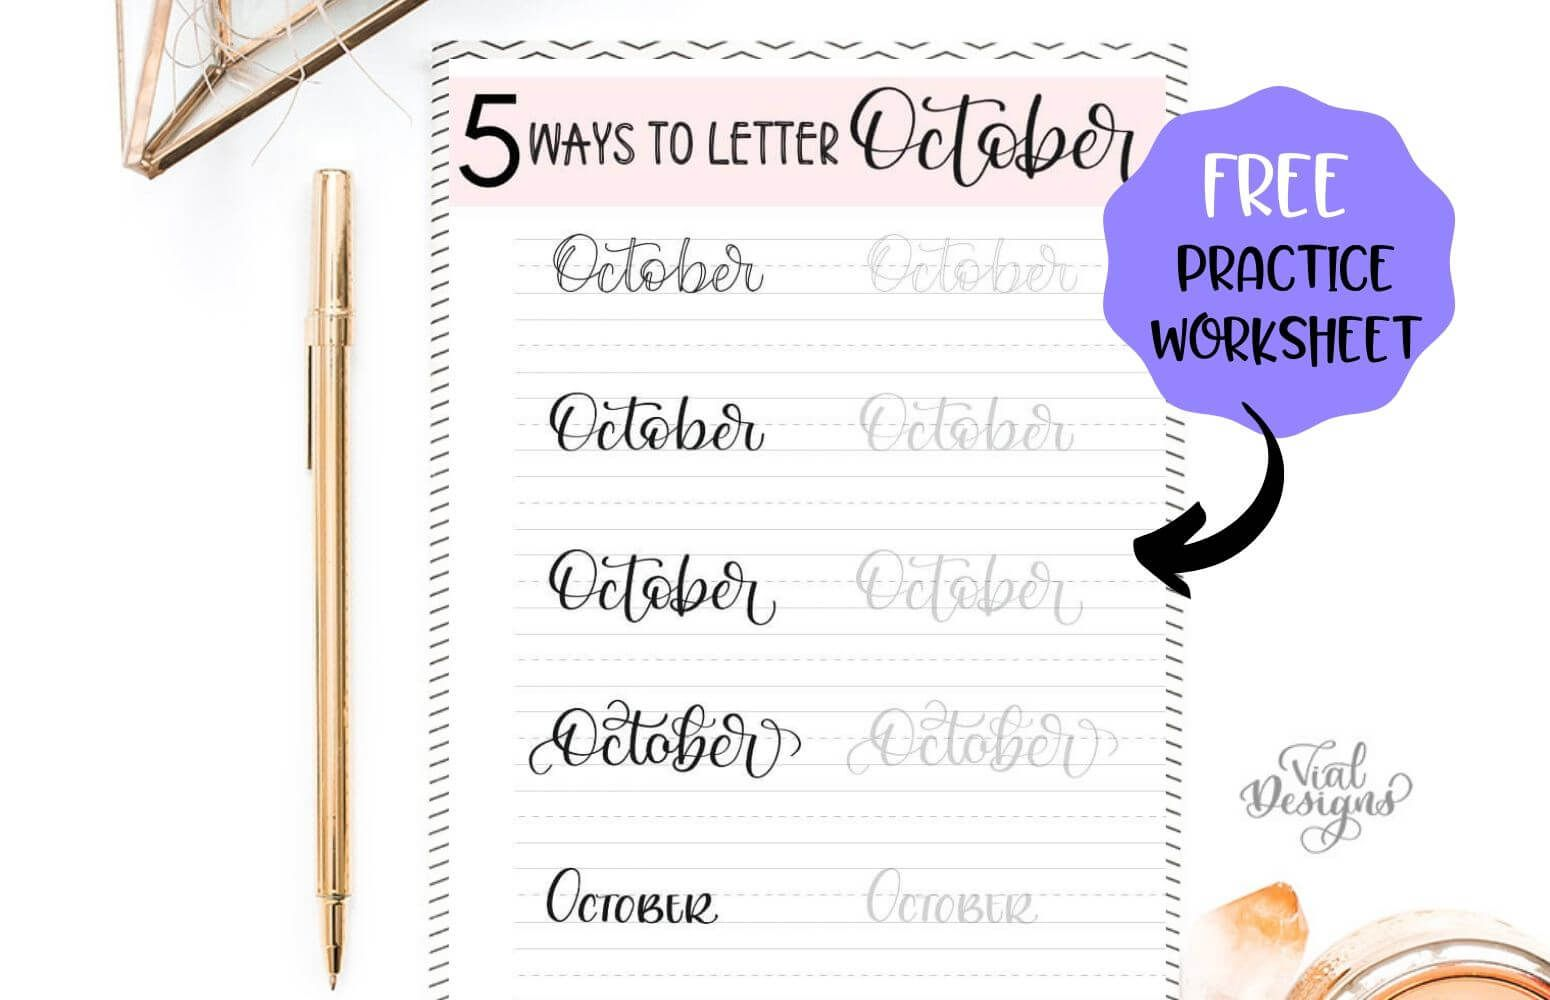 5 Ways To Letter October Plus Free Practice Worksheet By